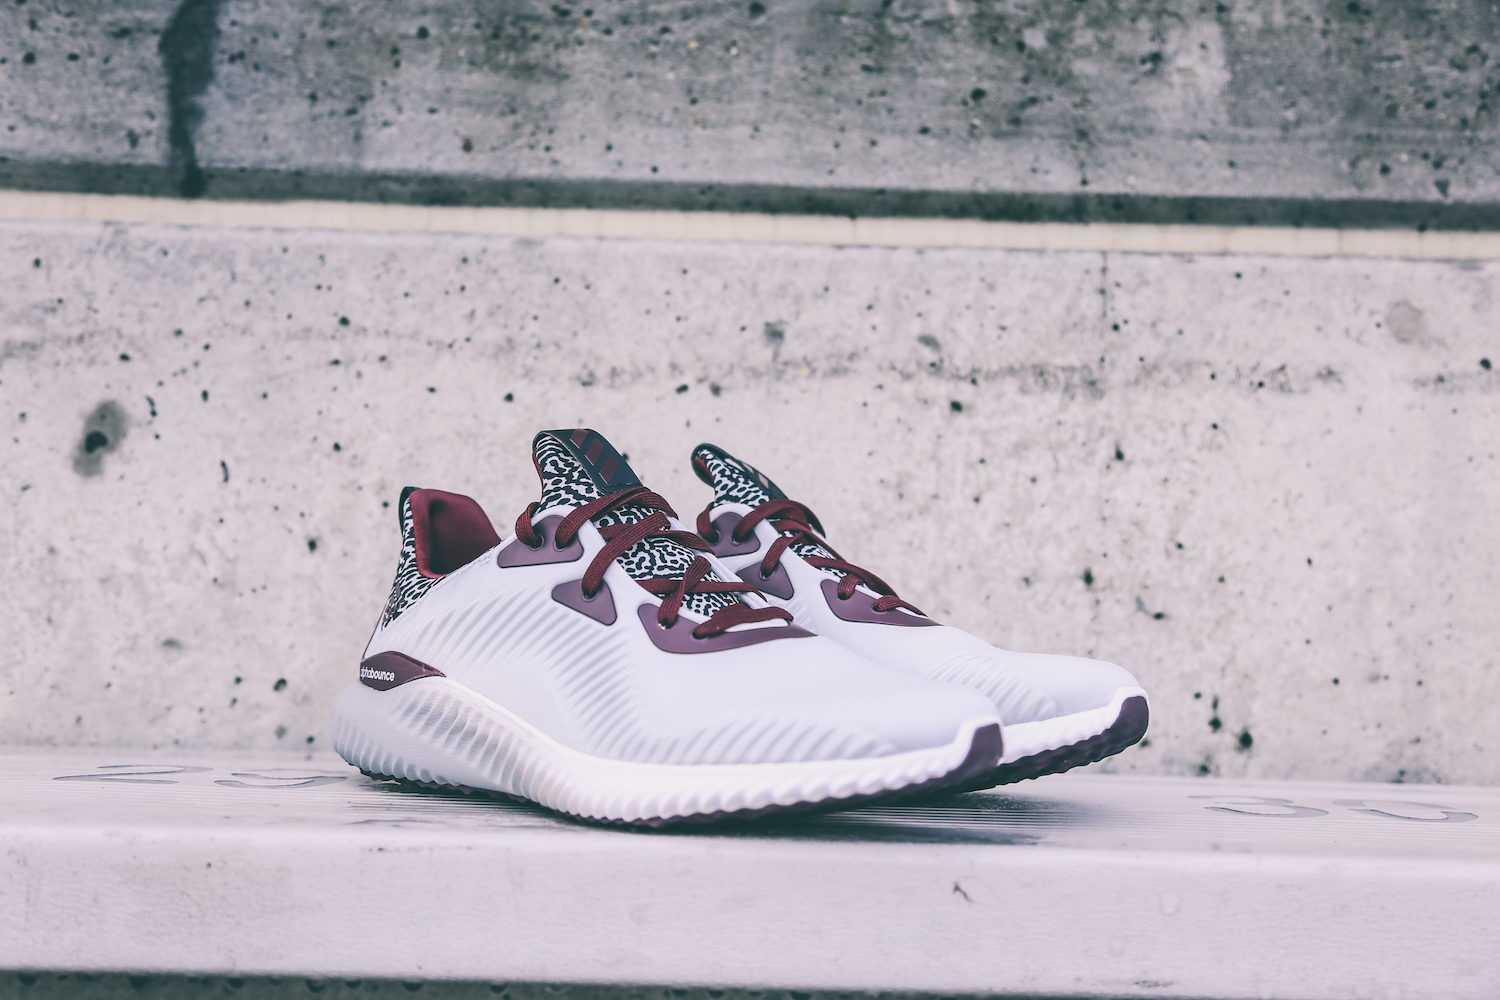 d753d2b9e adidas alphabounce ncaa texas A M mississippi state 3 - WearTesters